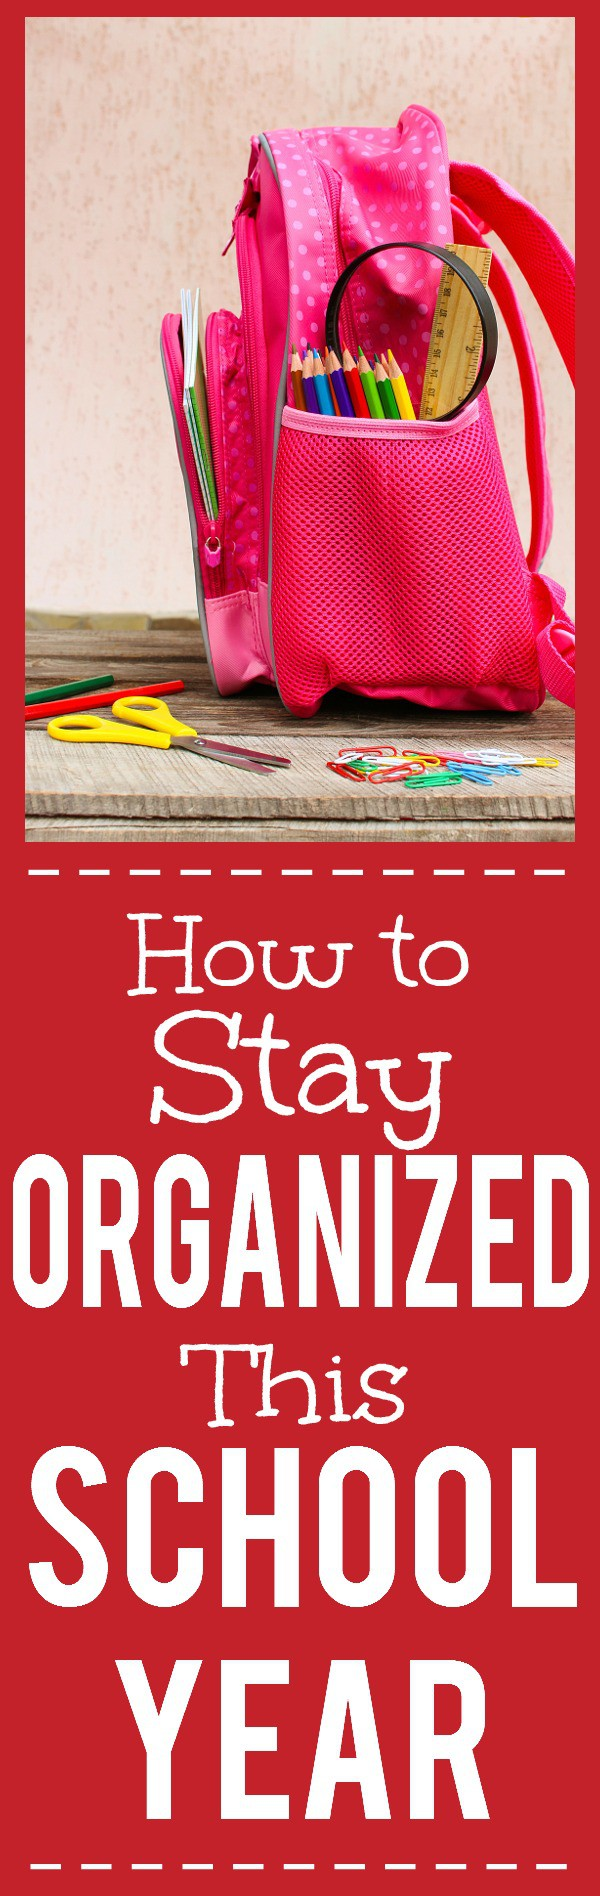 How to Get and Keep Your Kids Organized this School Year - 6 Easy Tips! Jump into the school year the right way by getting and staying organized with these 6 tips for how to keep your kids organized this school year for a happier, healthier year! Just what we needed!